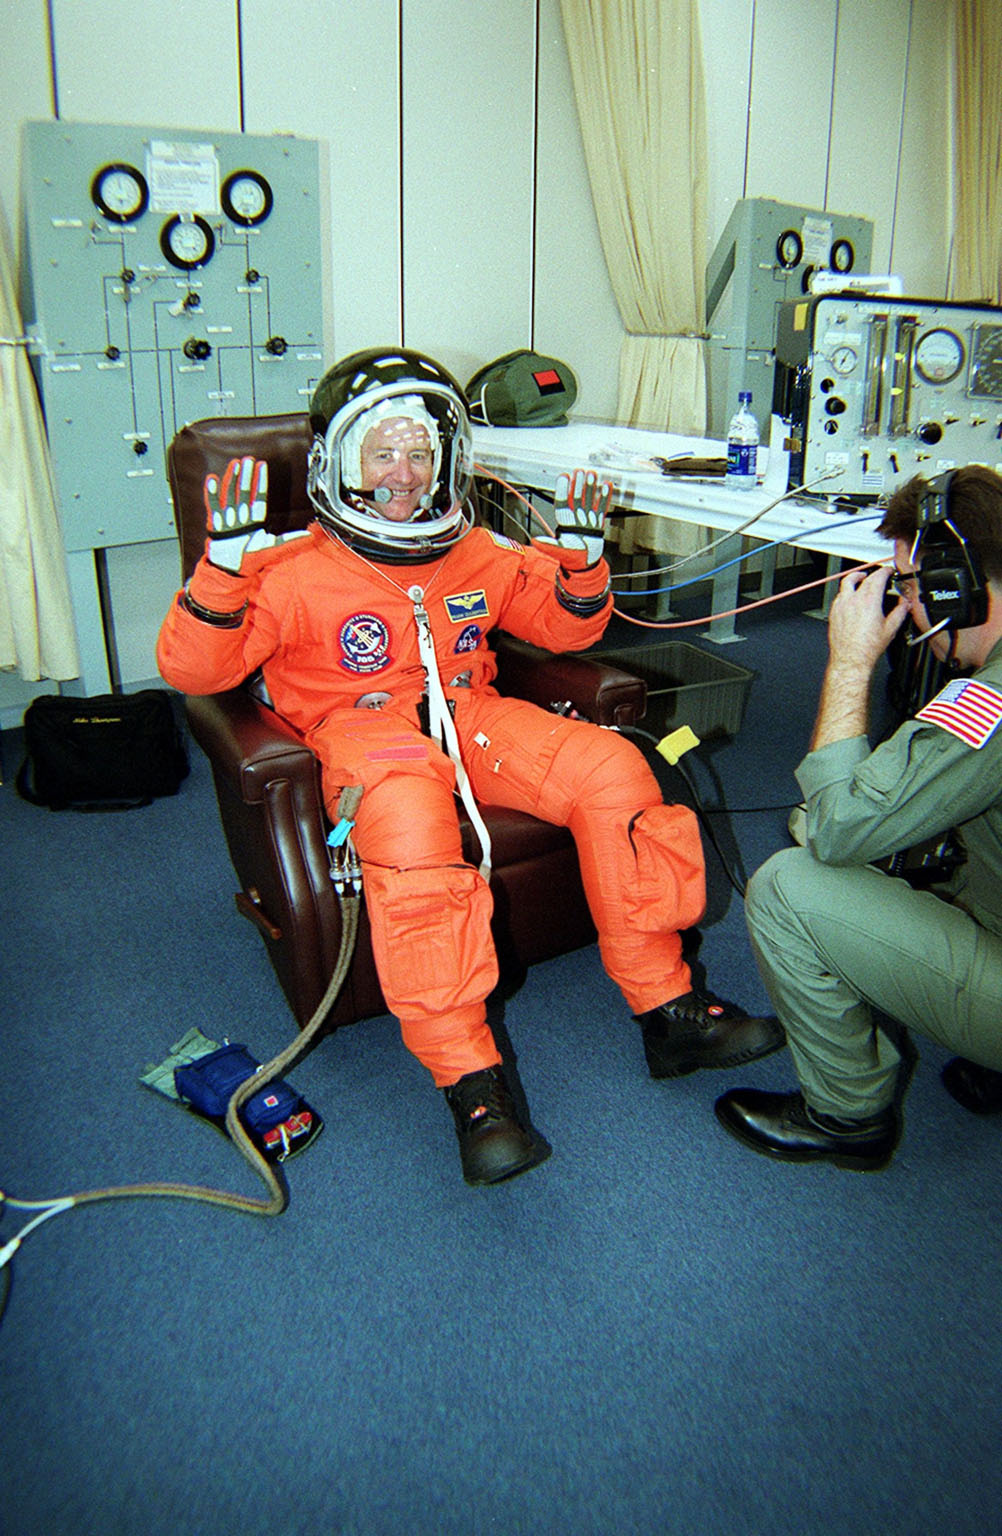 KENNEDY SPACE CENTER, Fla. -- Expedition Three Commander Frank Culbertson shows his eagerness for liftoff while suiting up in his launch and entry suit. On mission STS-105, Discovery will be transporting the Expedition Three crew and several scientific experiments and payloads to the International Space Station, including the Early Ammonia Servicer (EAS) tank. The EAS, which will support the thermal control subsystems until a permanent system is activated, will be attached to the Station during two spacewalks. The three-member Expedition Two crew will be returning to Earth aboard Discovery after a five-month stay on the Station. Launch is scheduled for 5:38 p.m. EDT Aug. 9